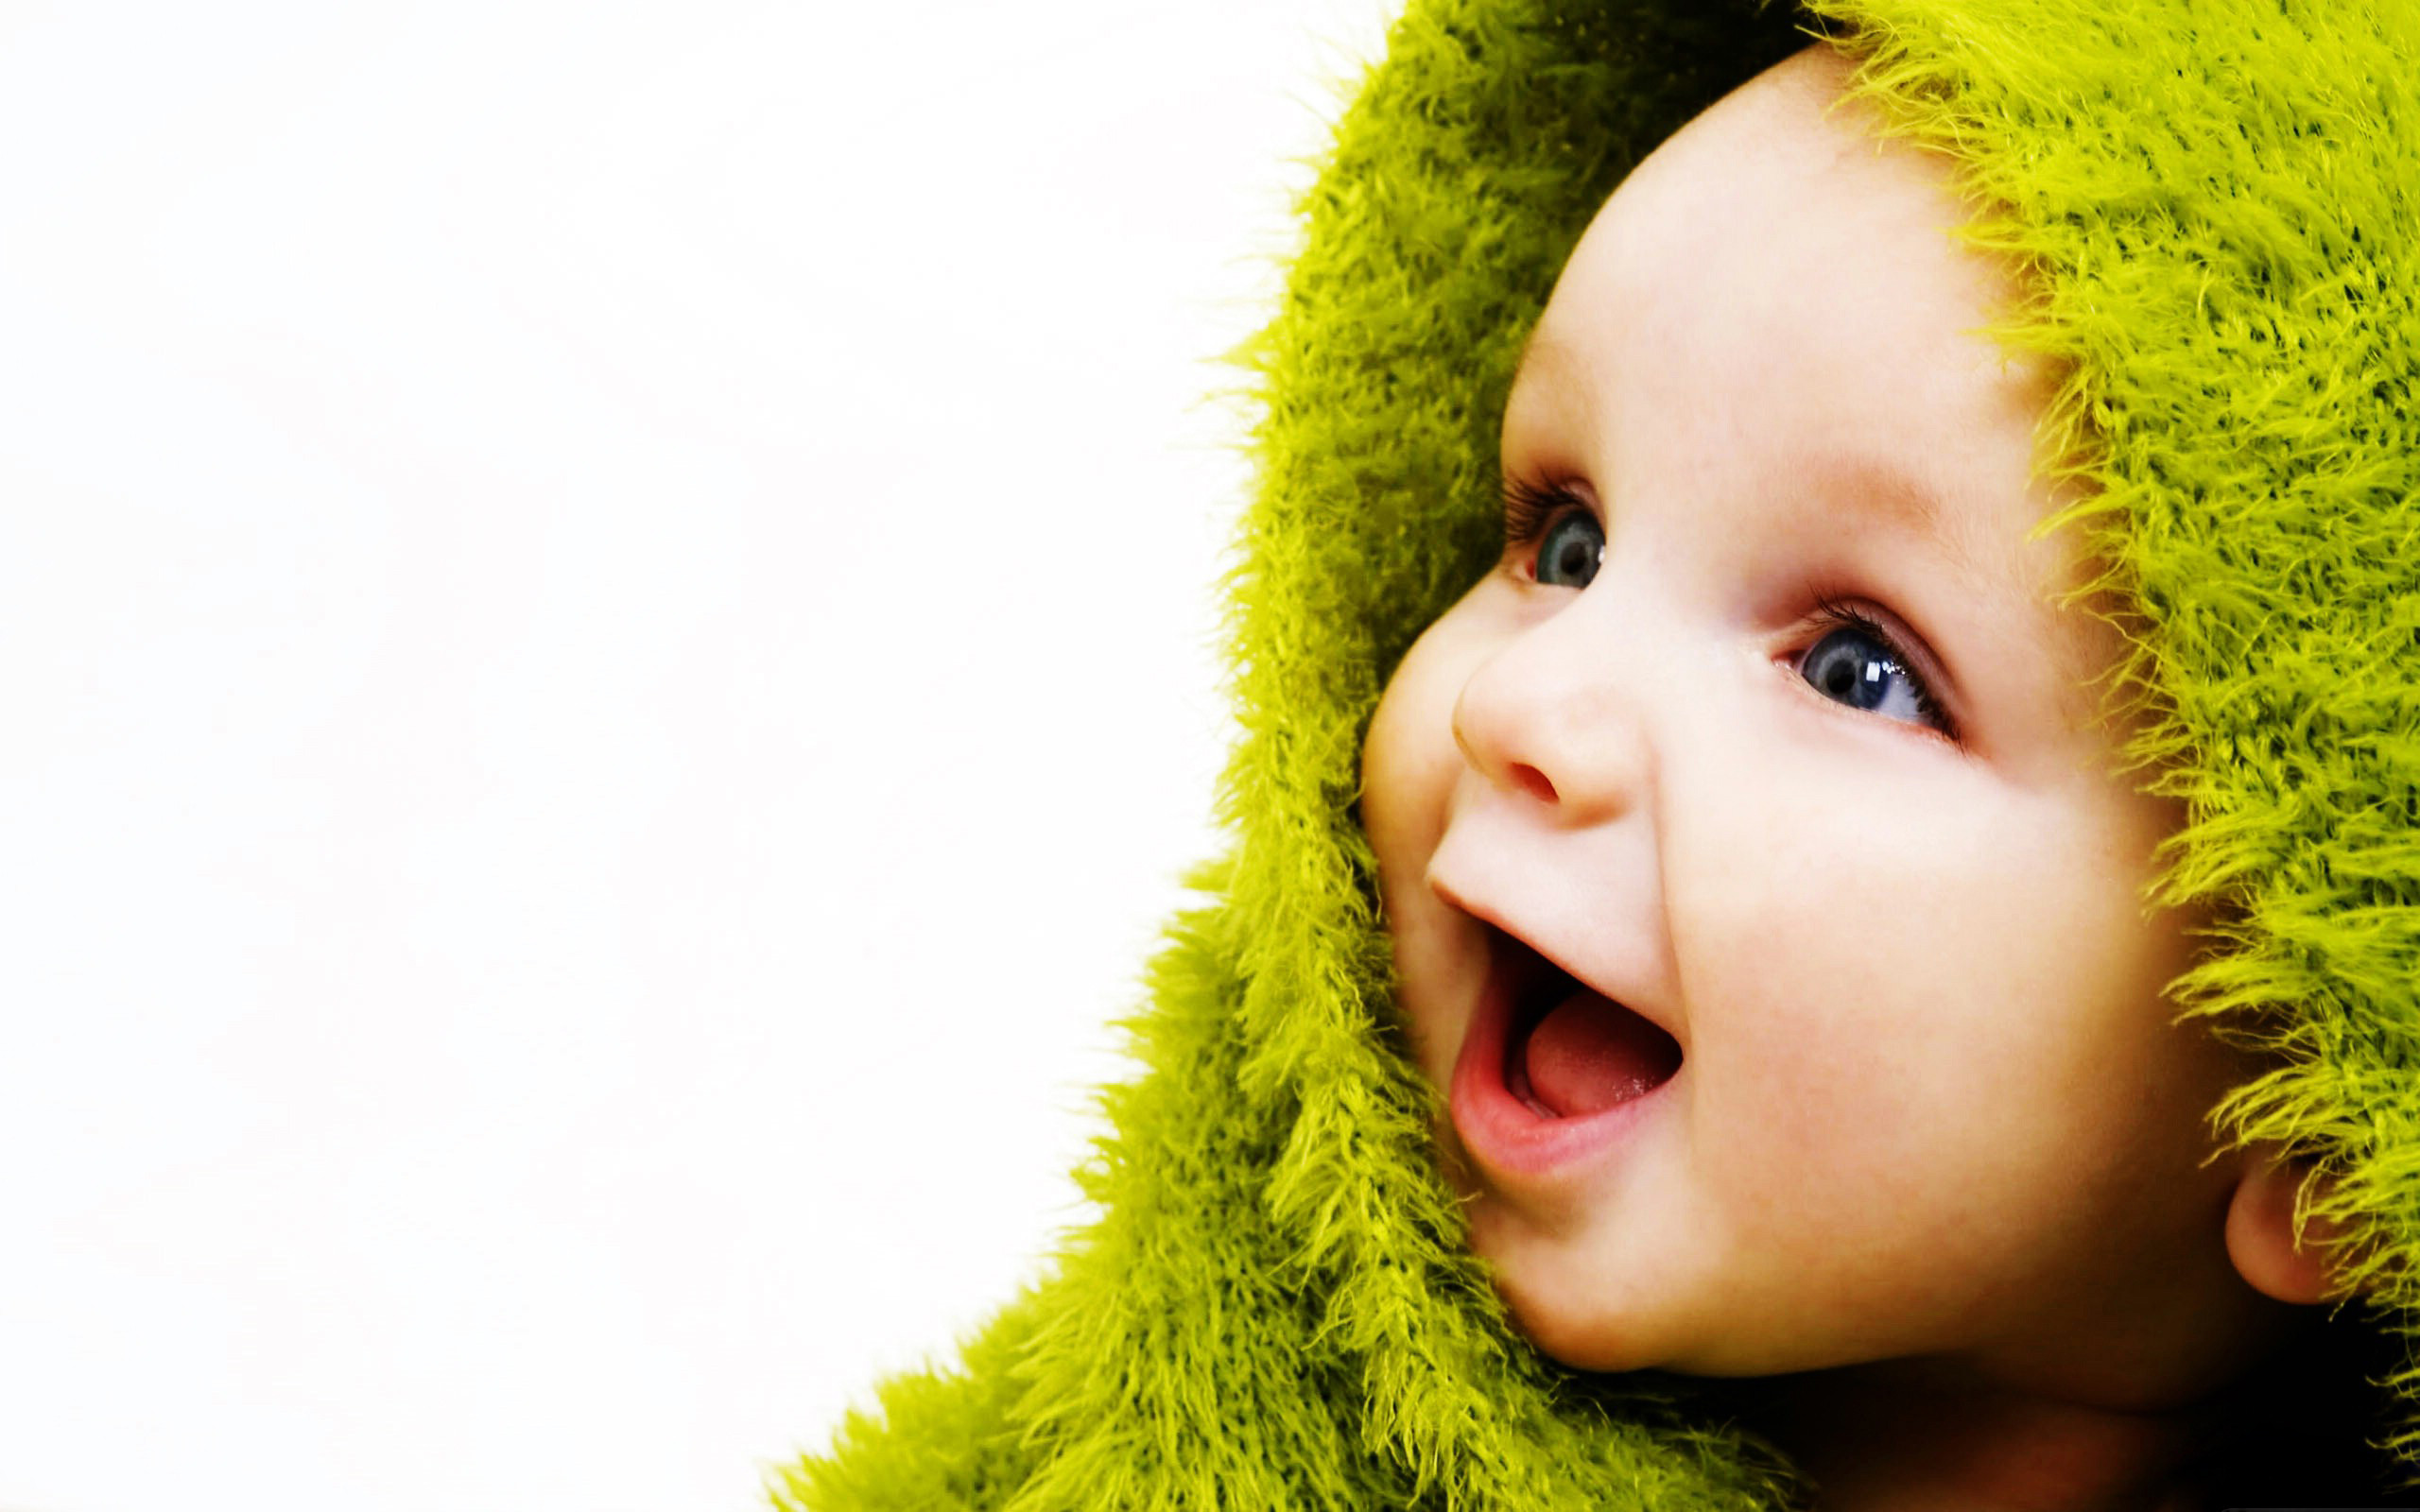 Cute Baby Boy Hd Images Free Download Vinny Oleo Vegetal Info